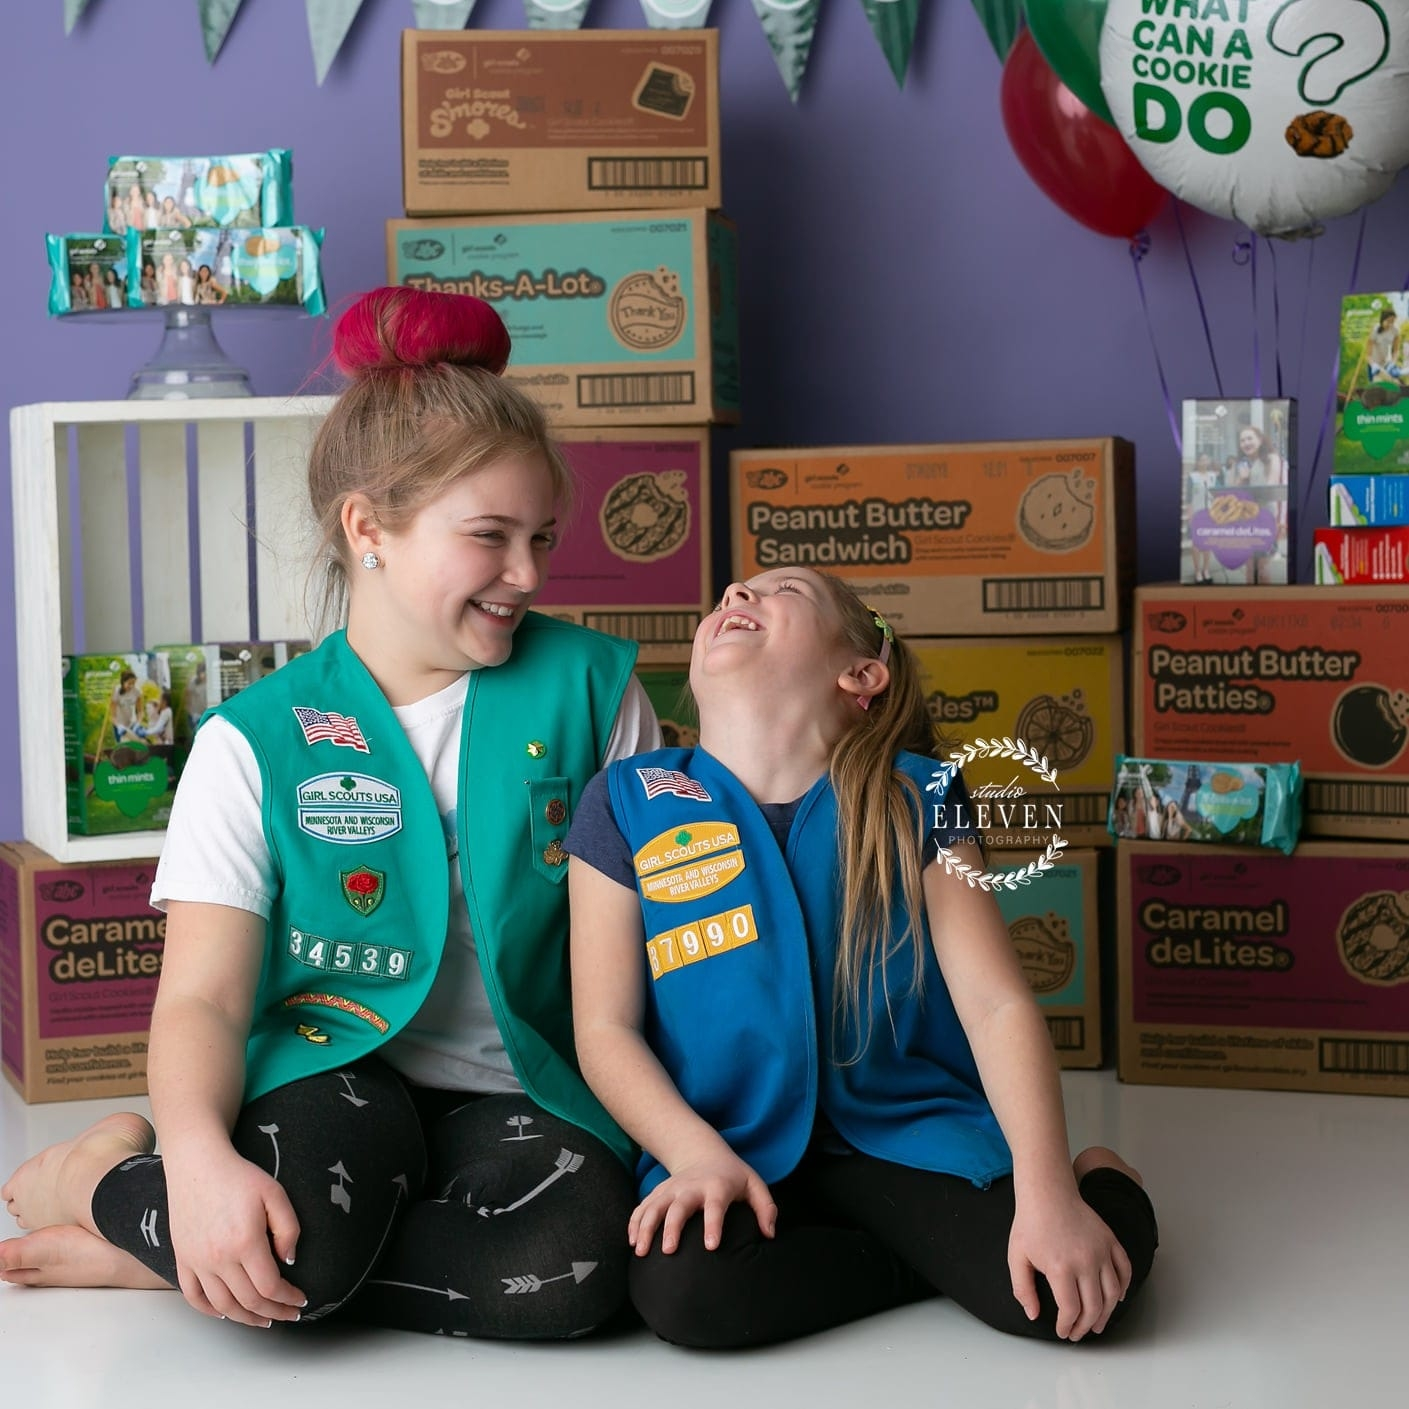 Two girl scouts sisters laughing candidly in front of their cookie packages.